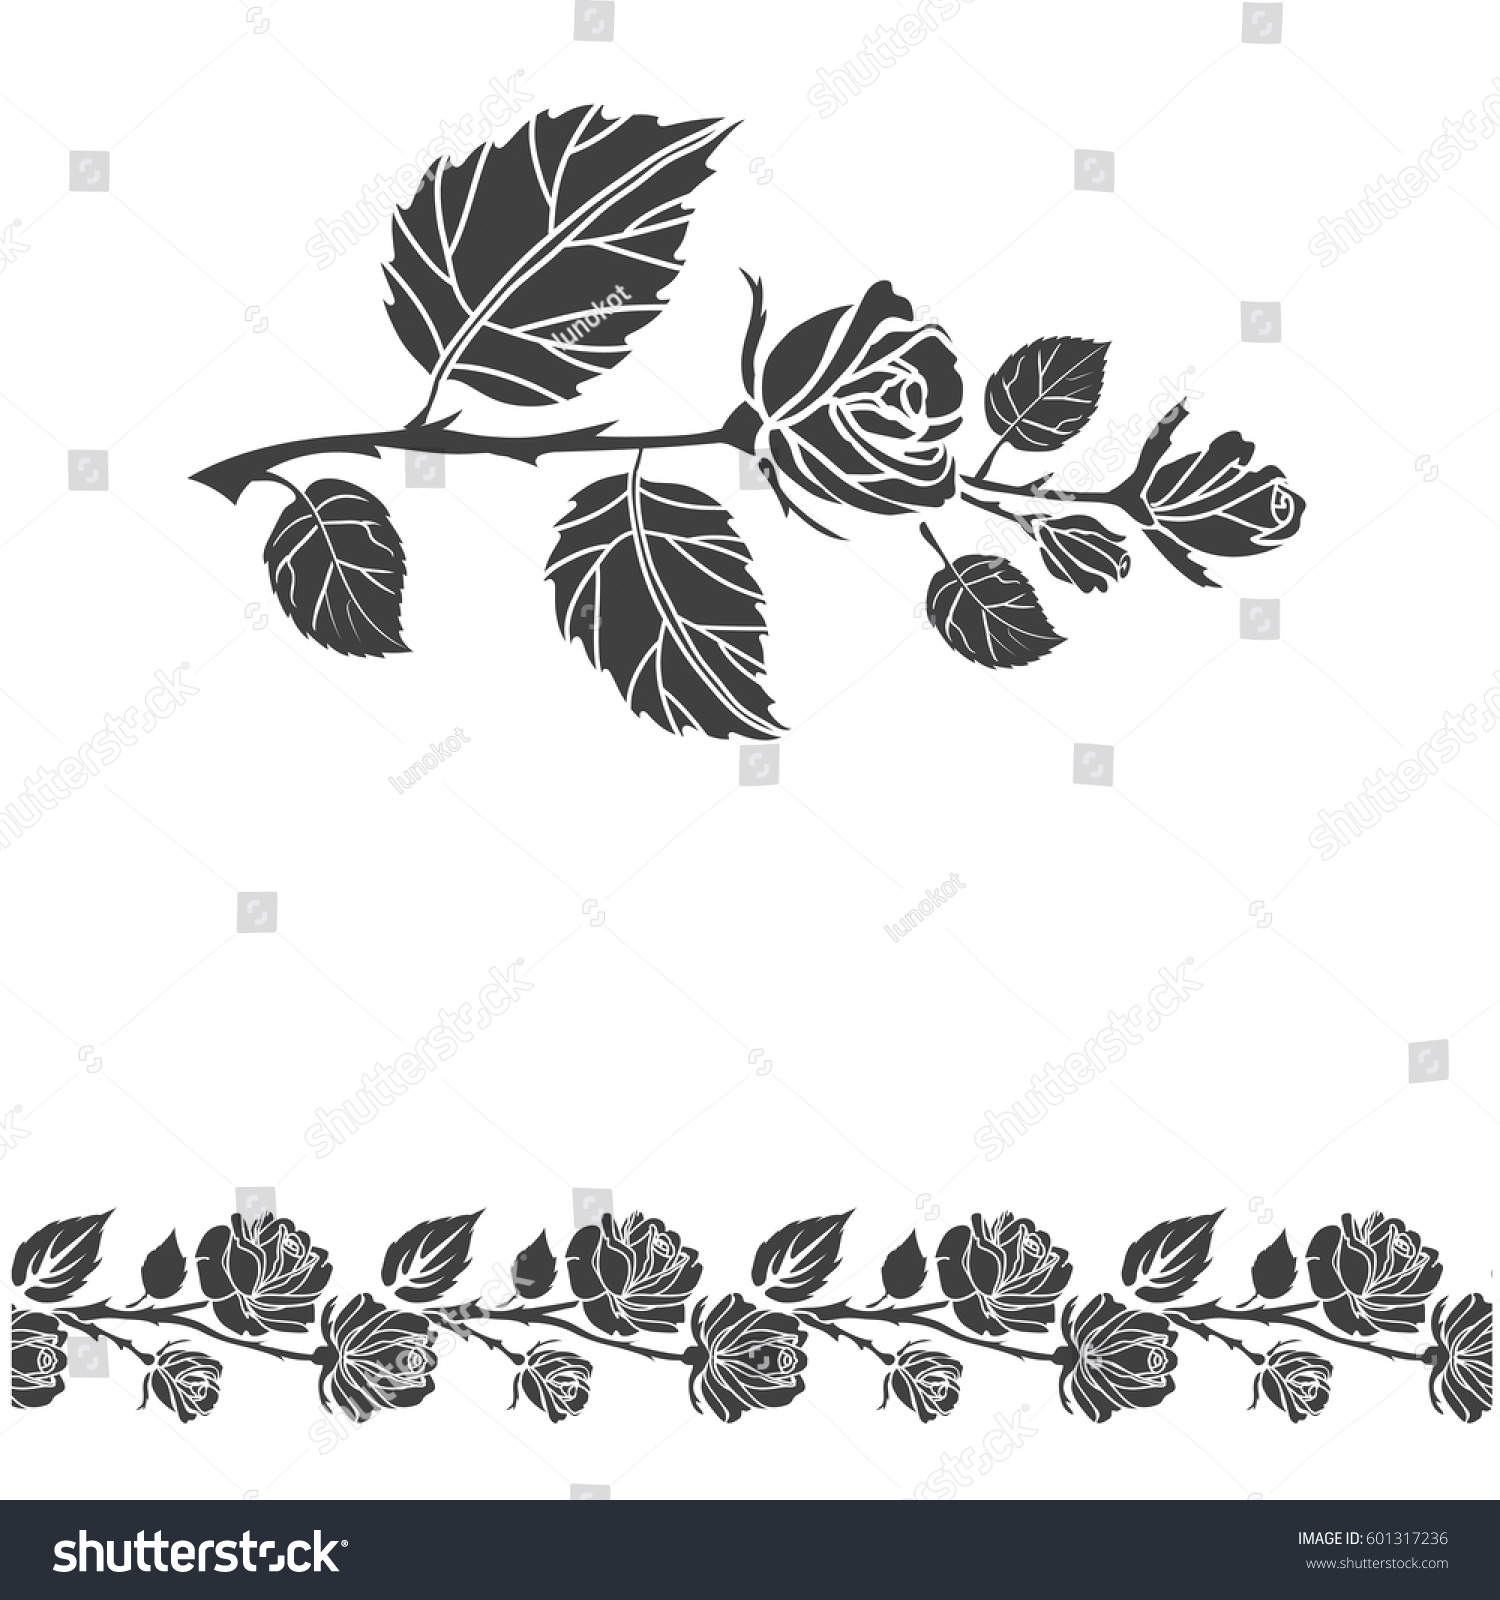 Rose Tattoo Brush Stroke Silhouette Roses Stock Vector ...